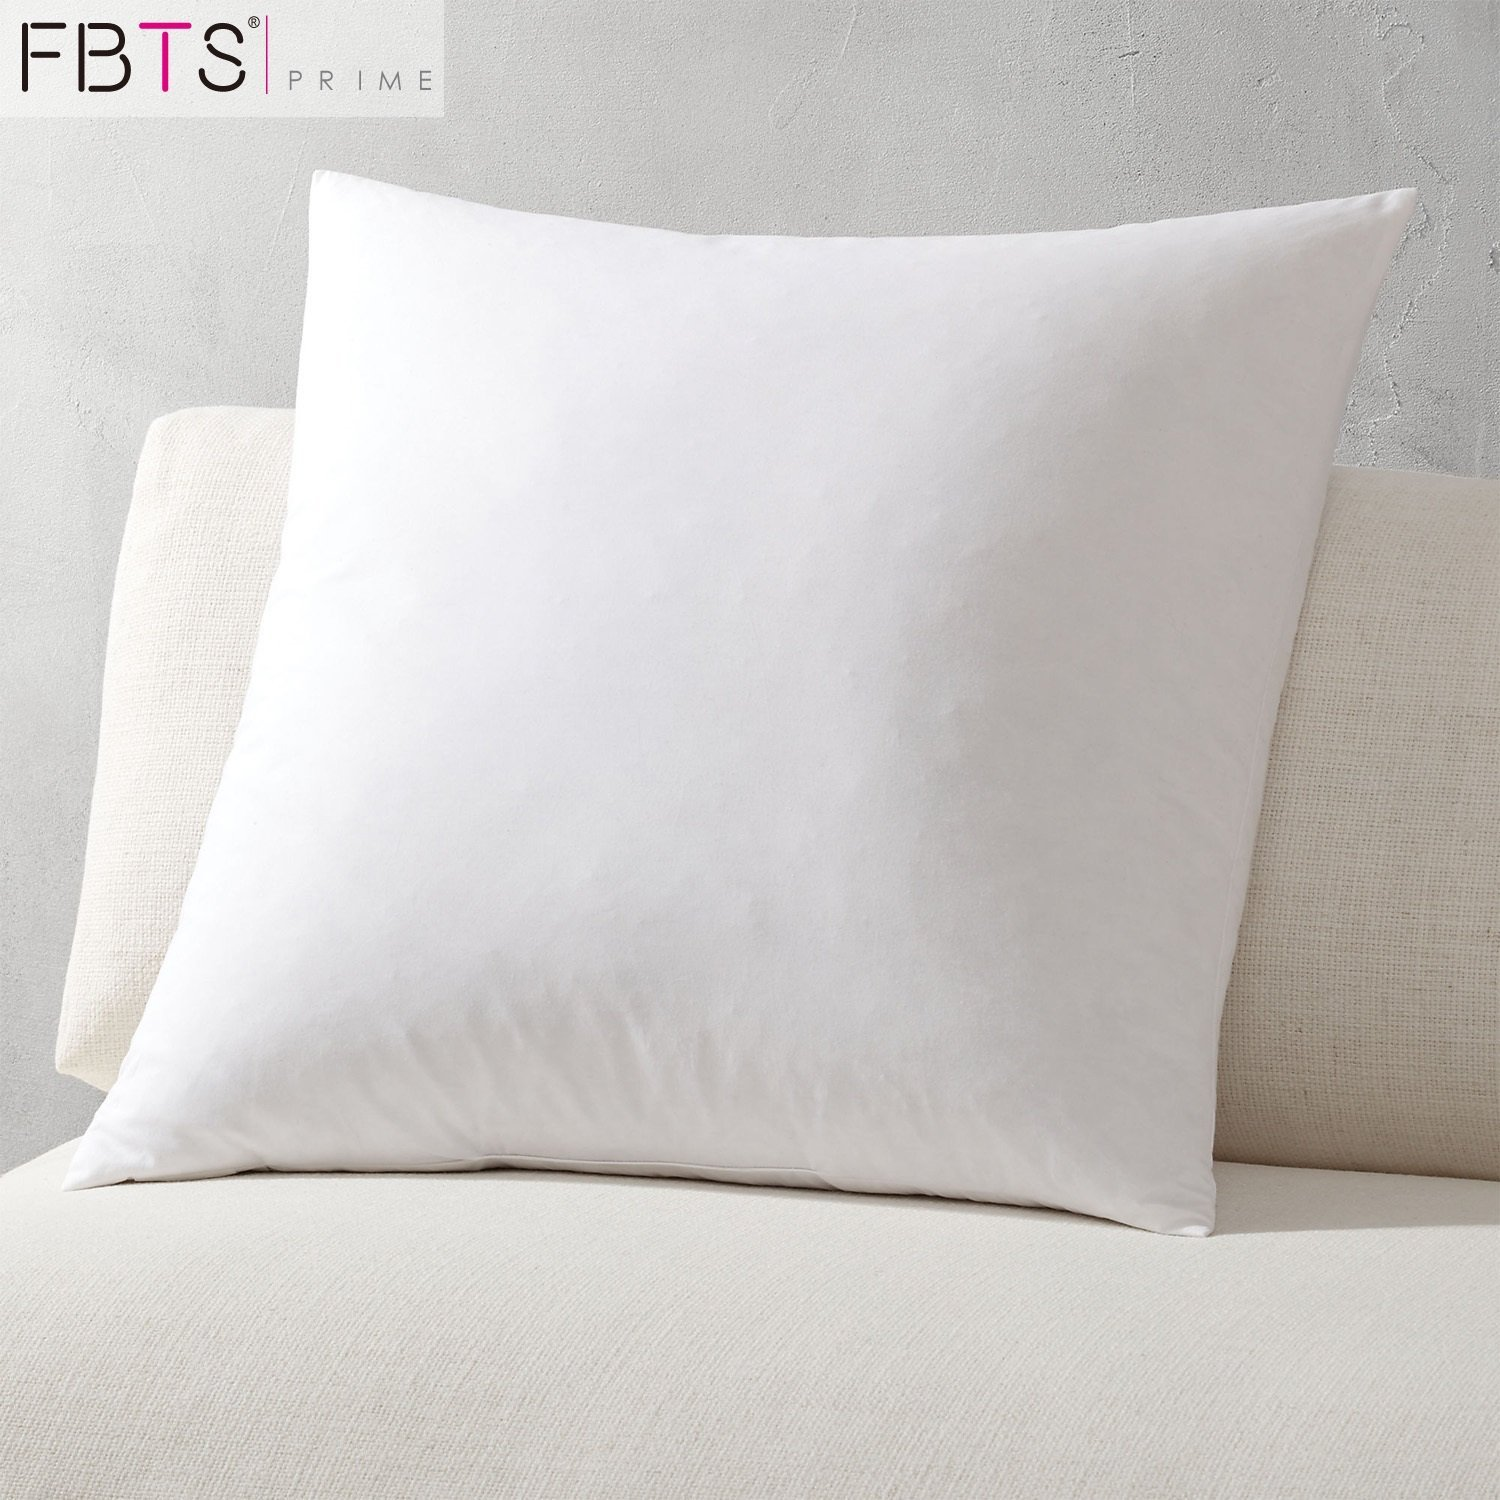 Throw Pillow Insert 18x18 Inch Hypoallergenic Foam Stuffer Standard Decorative Square Sequin Couch Pillow Inserts For Indoor And Outdoor White 1 Pack Buy Online In Aruba At Aruba Desertcart Com Productid 44149811